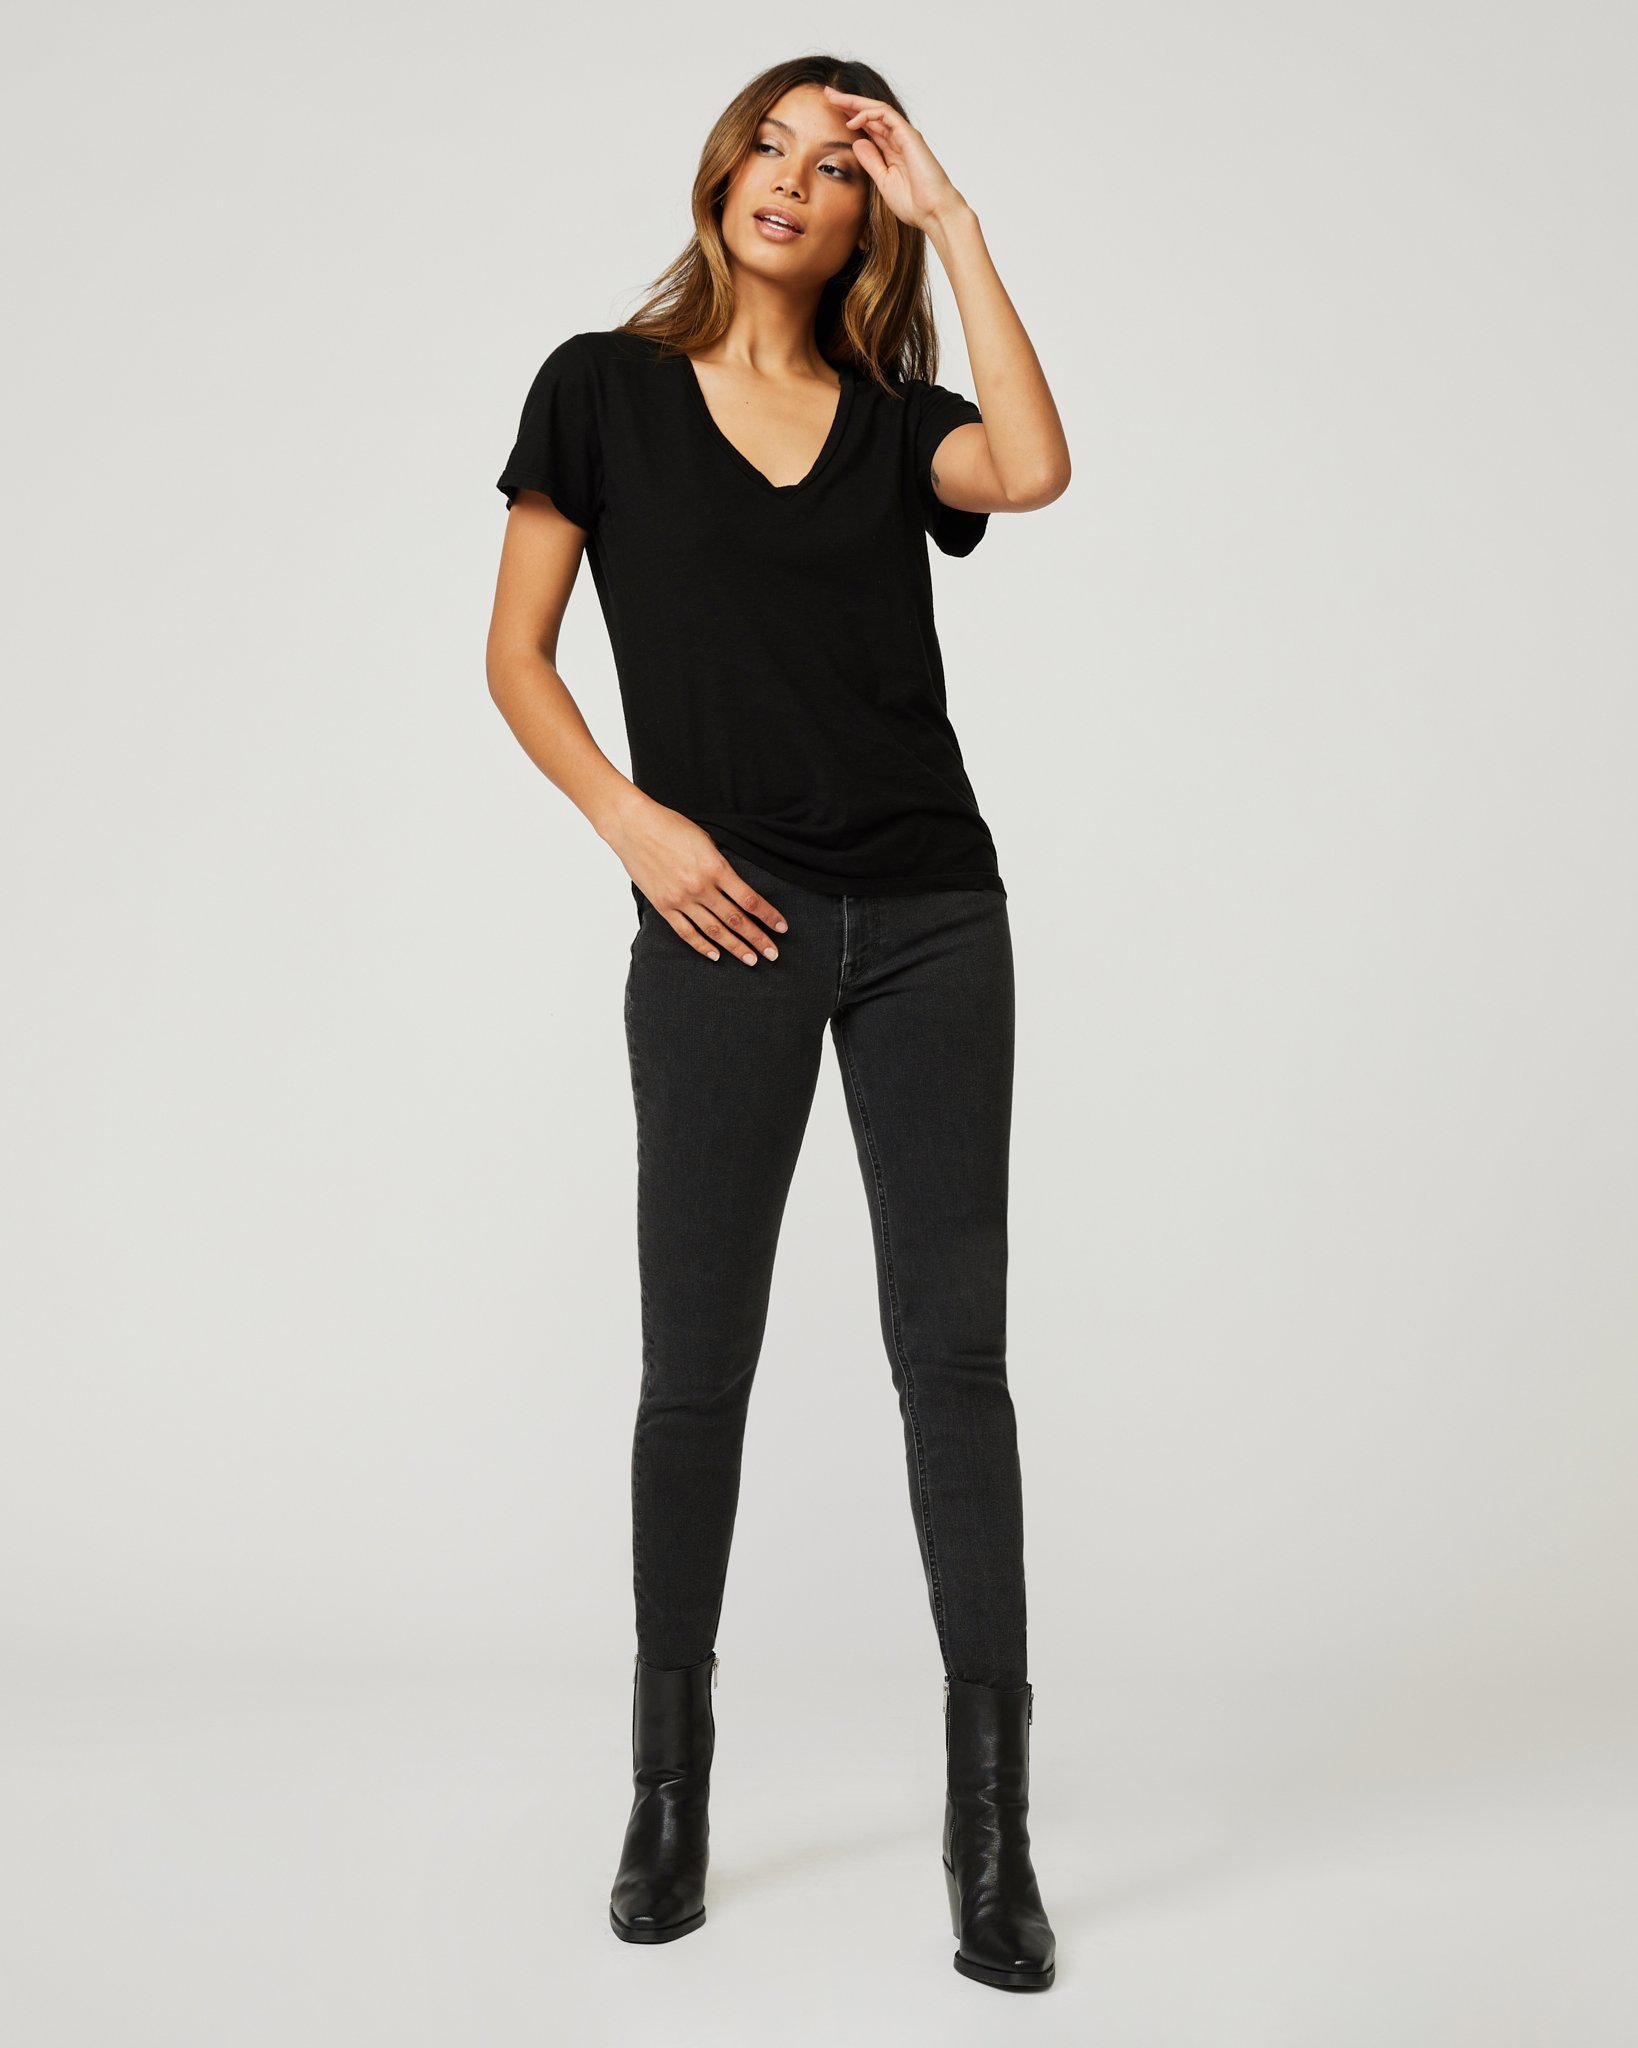 SCLPT Skinny Jeans in Rules Don't Apply